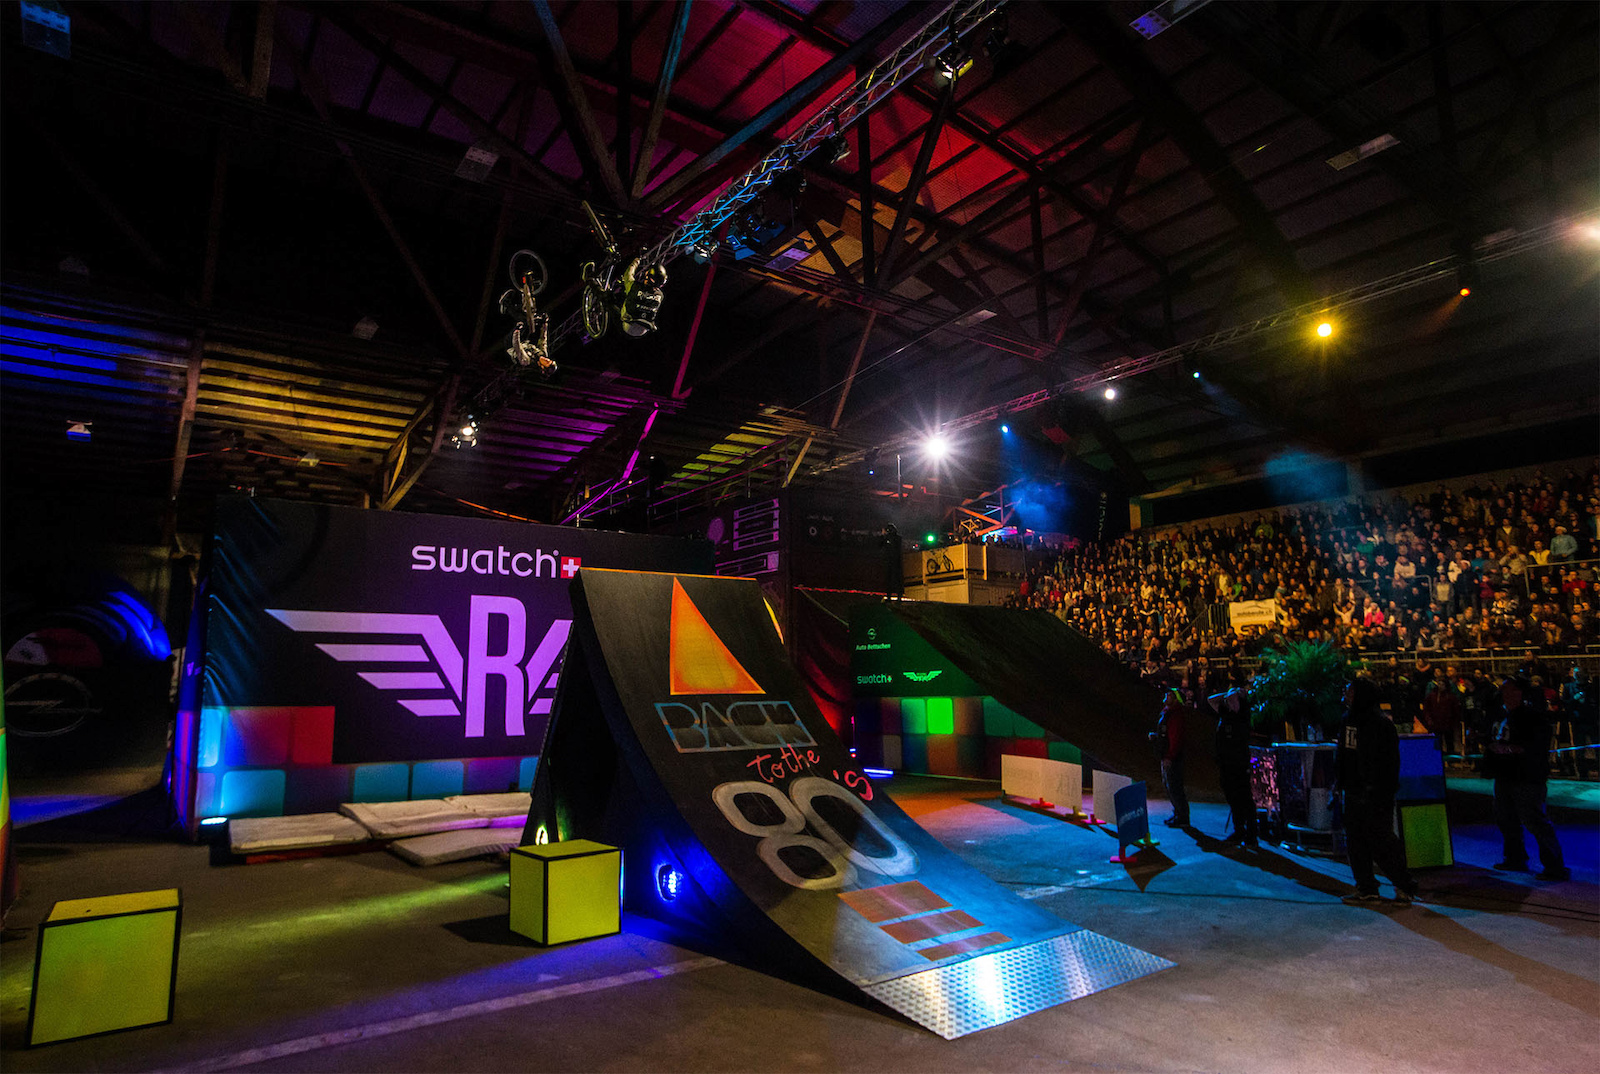 Team Battle and Finals at Swatch Rocket Air